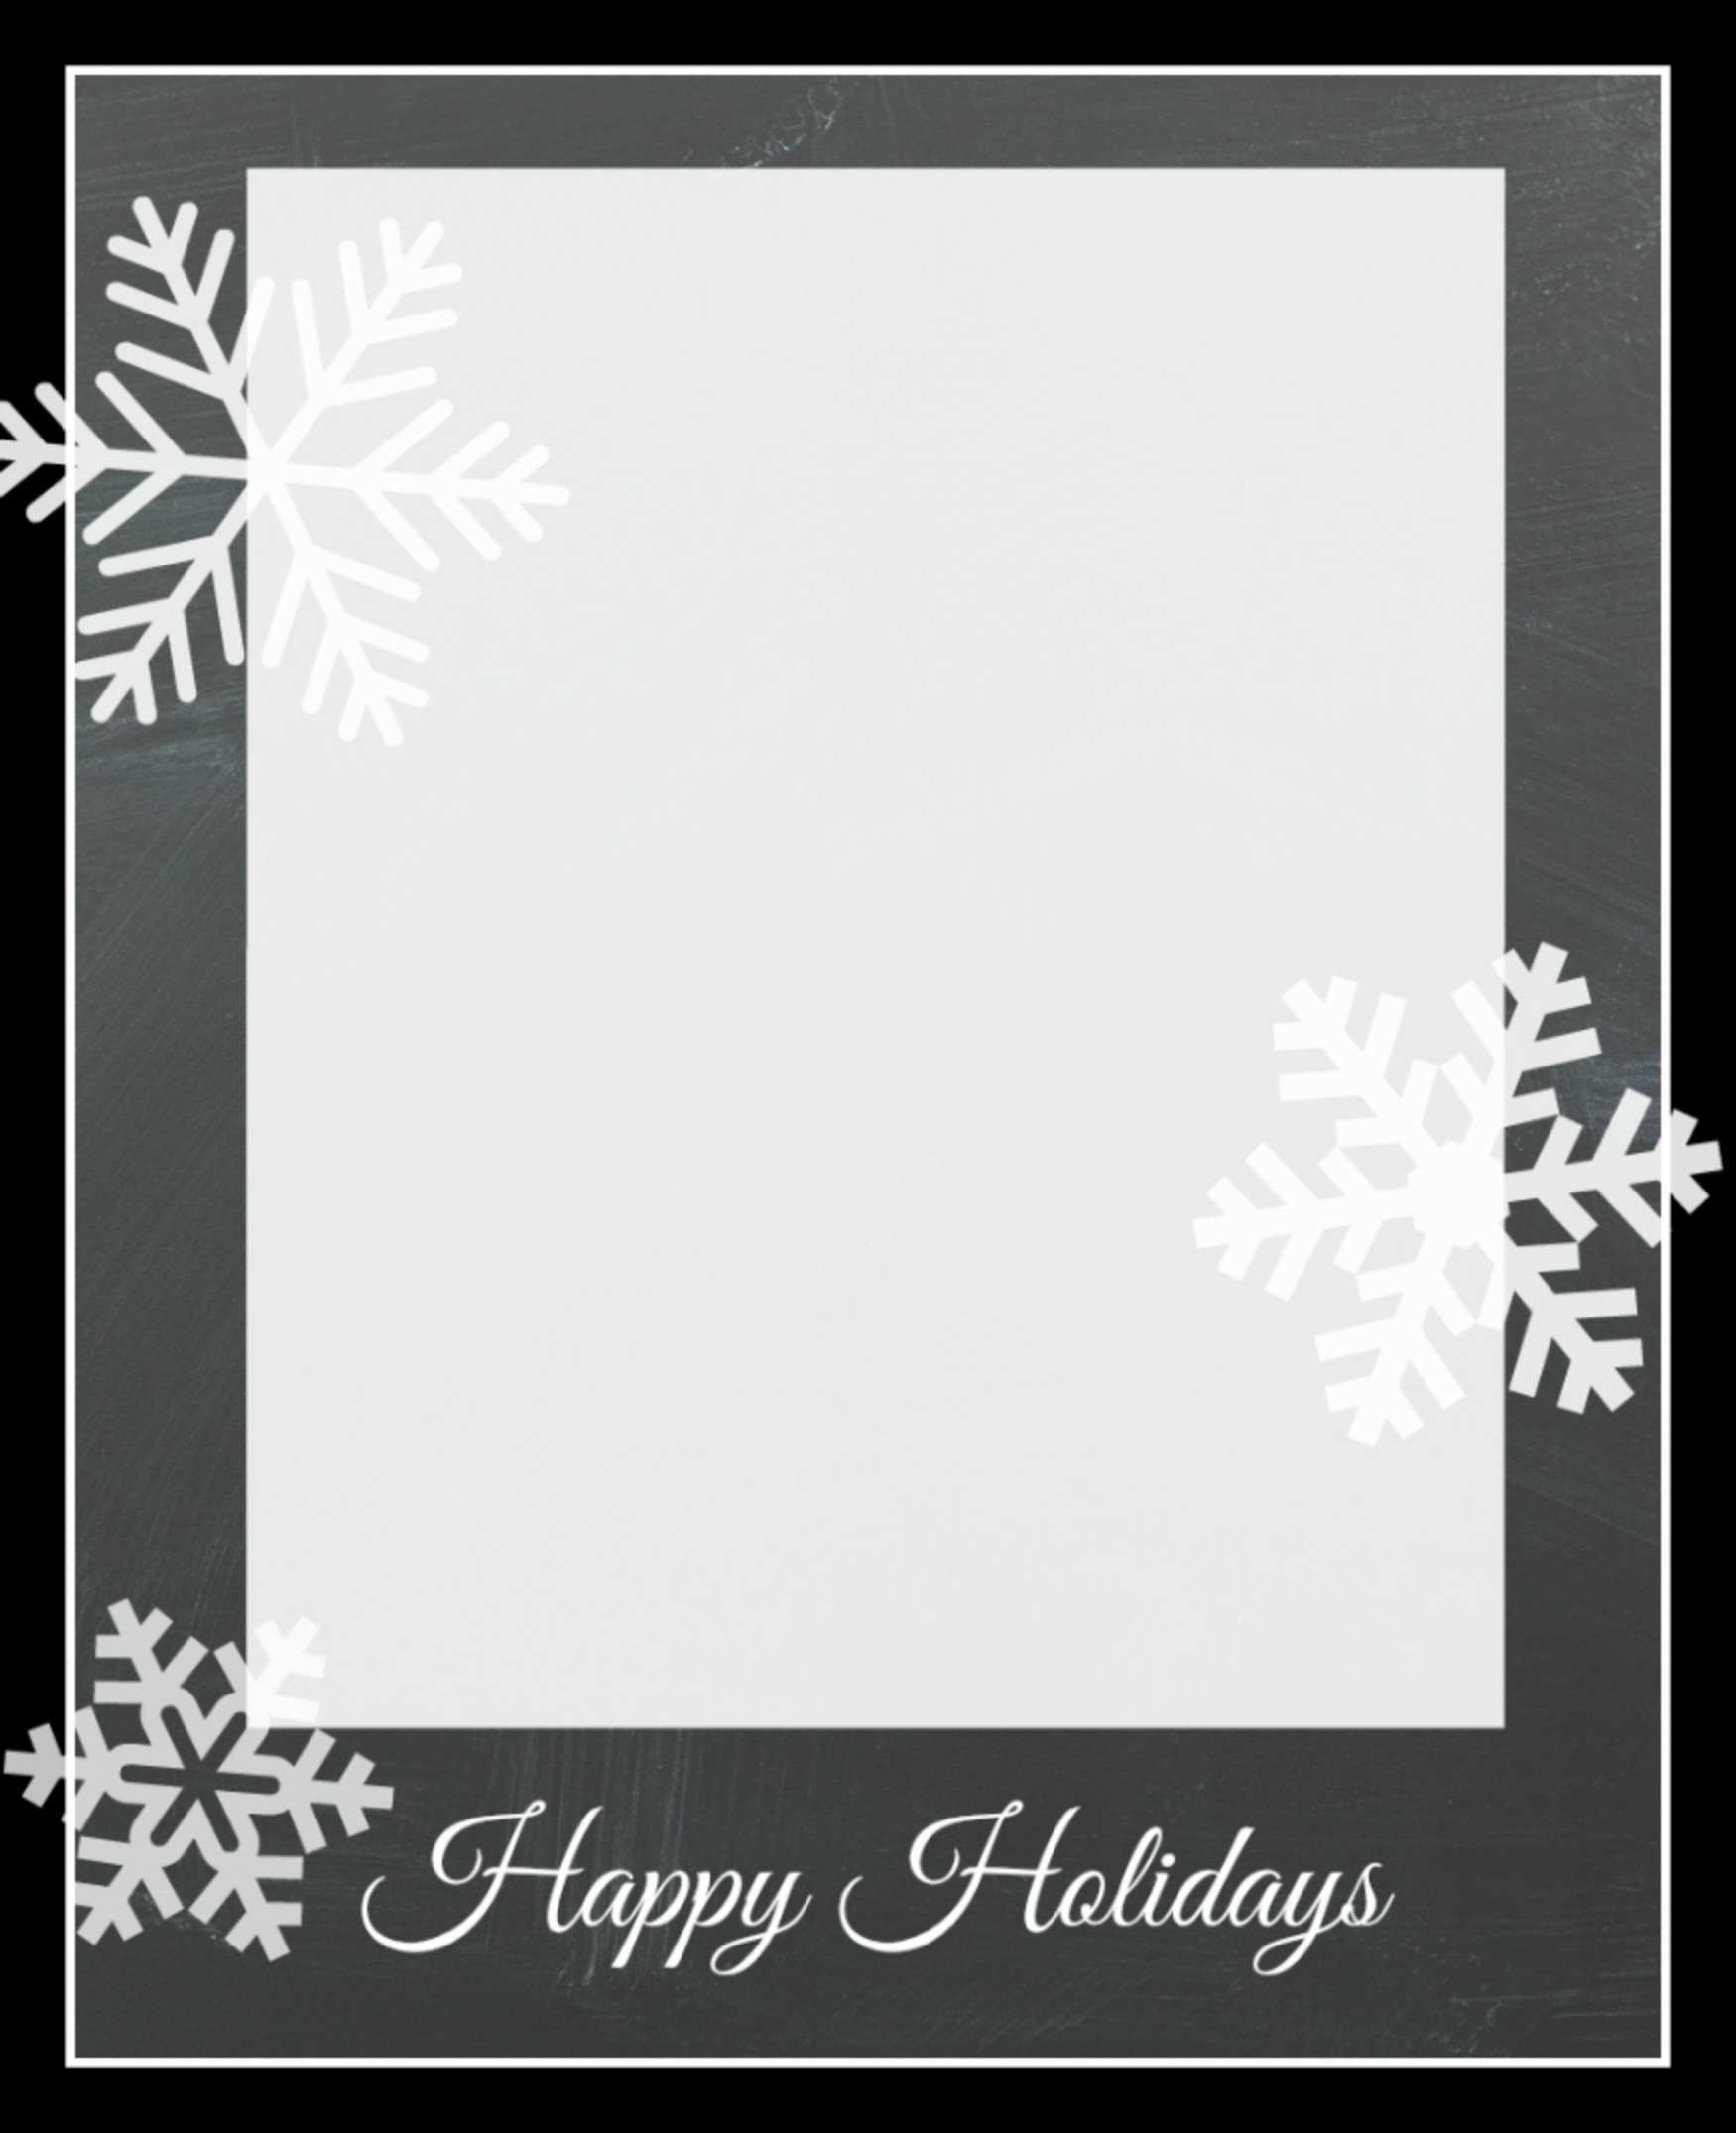 88 Christmas Card Template Jpg in Photoshop with Christmas Card Template Jpg